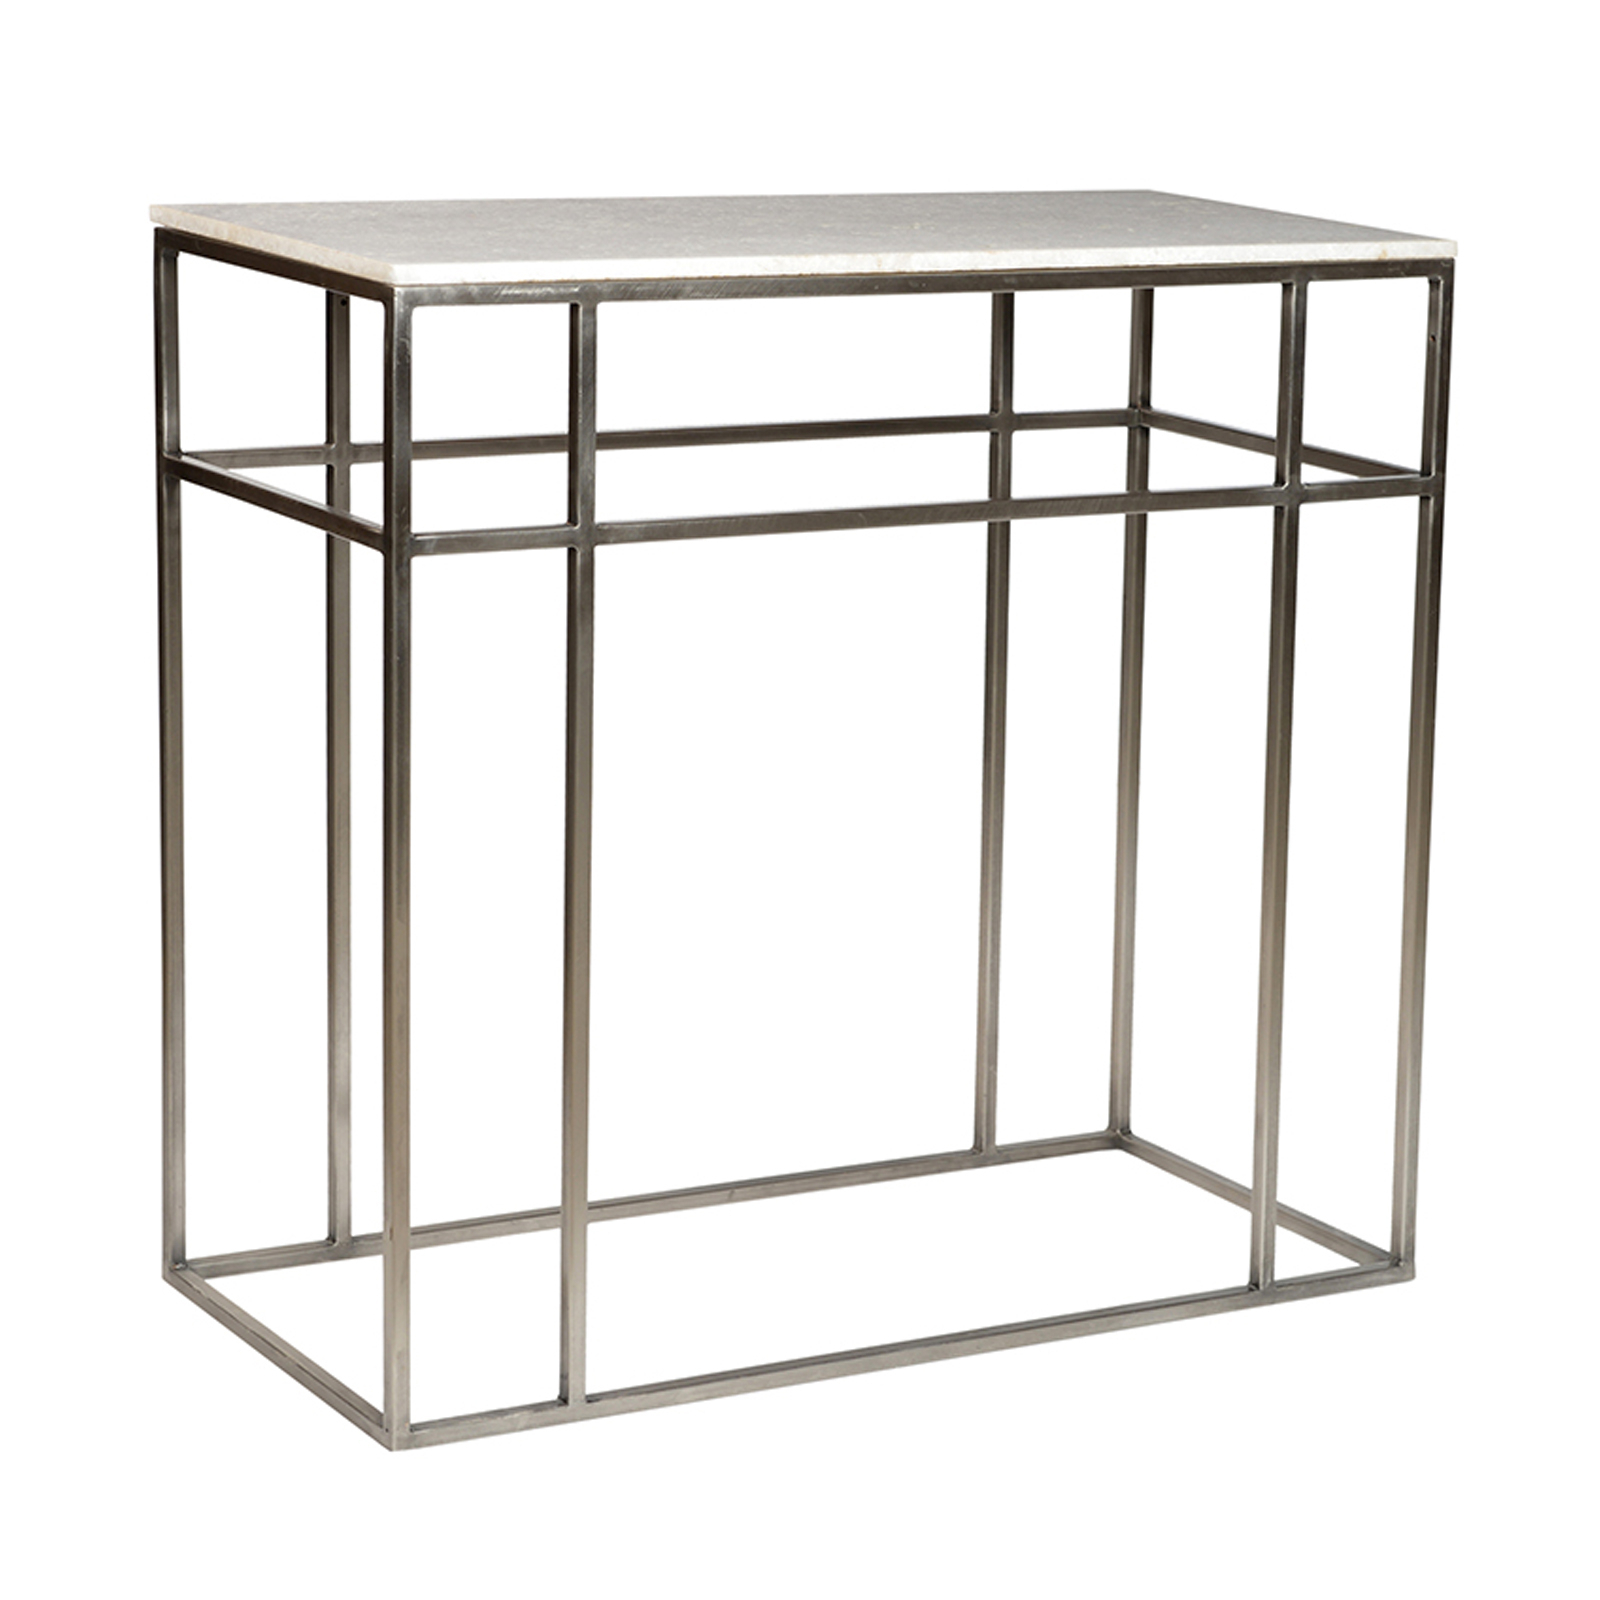 Laney Console Table Furniture | Mix Furniture in Mix Patina Metal Frame Console Tables (Image 14 of 30)